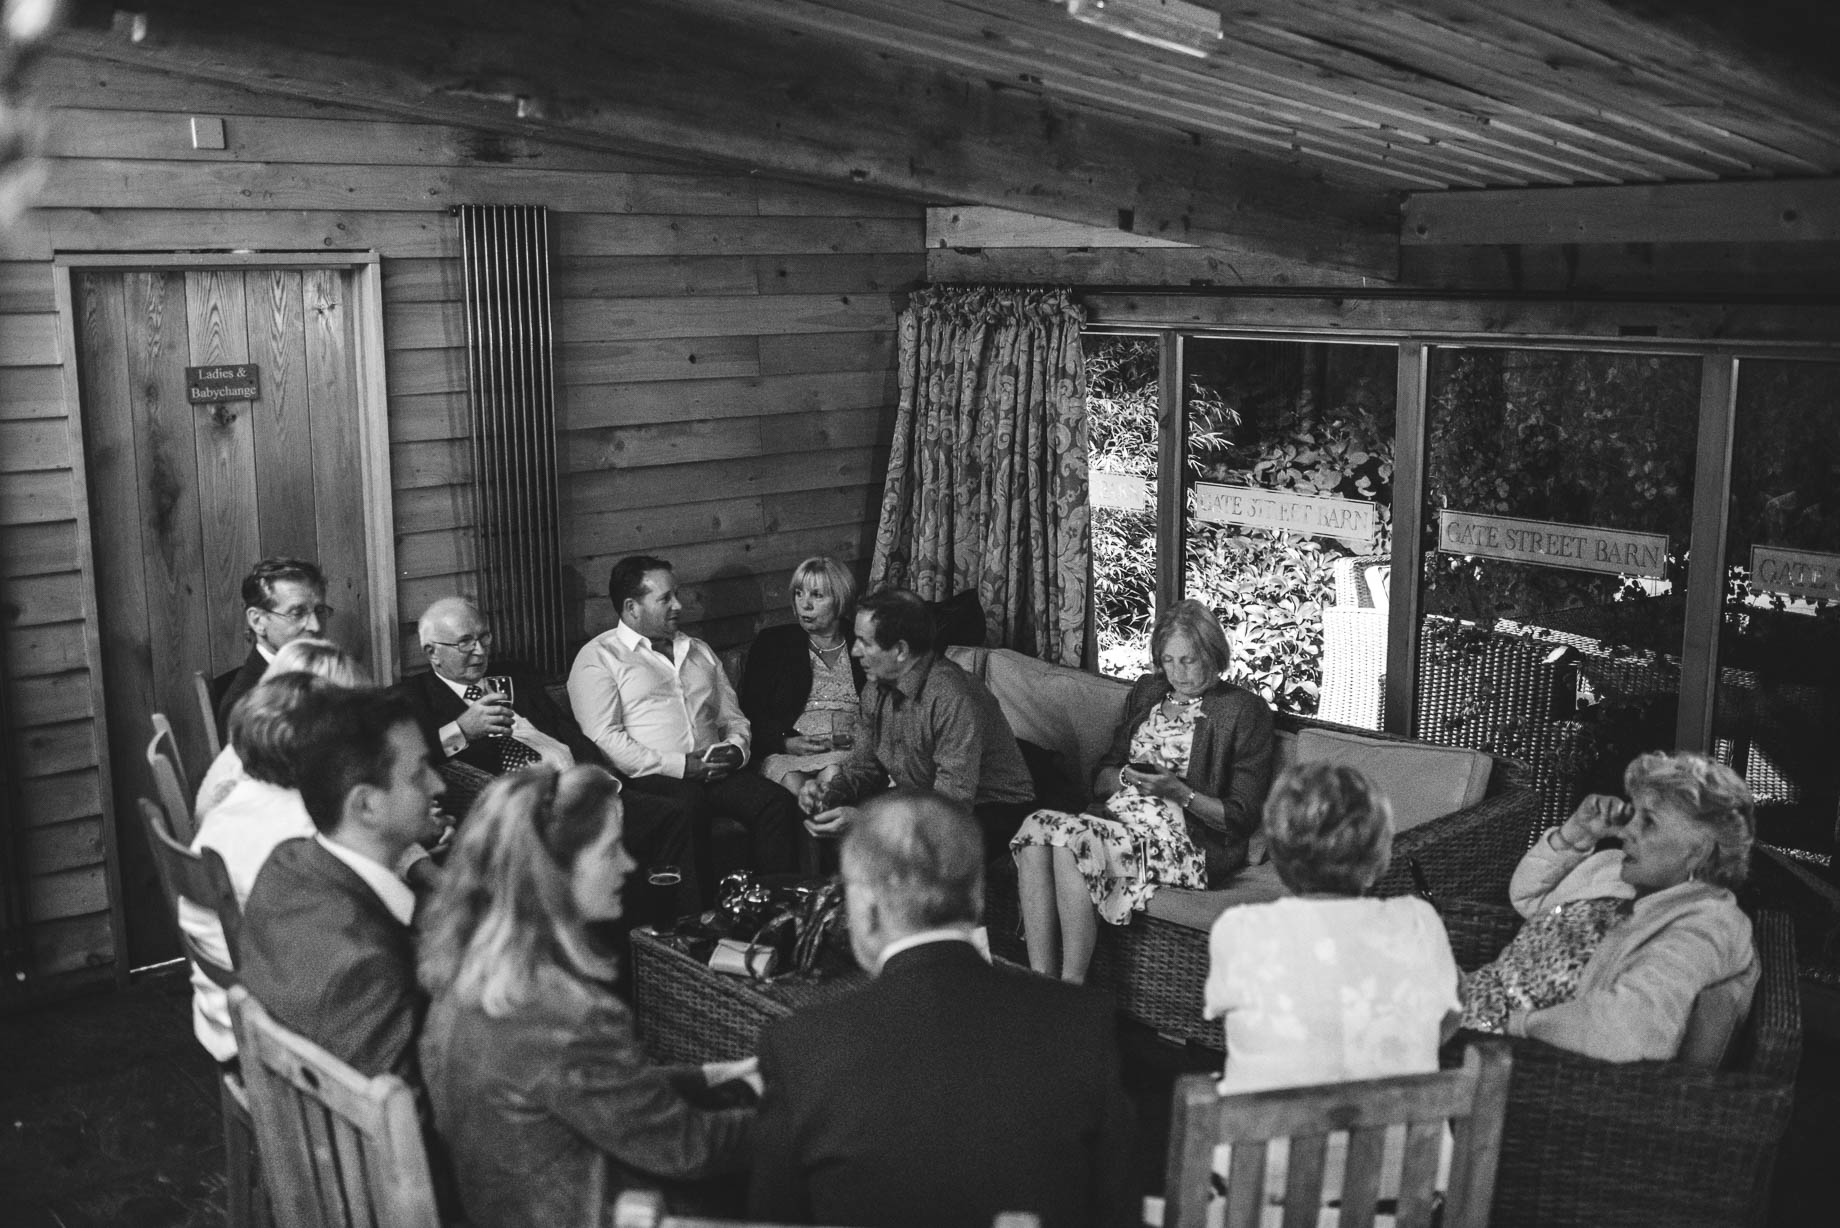 Gate Street Barn wedding photography - Guy Collier - Claire and Andy (179 of 192)